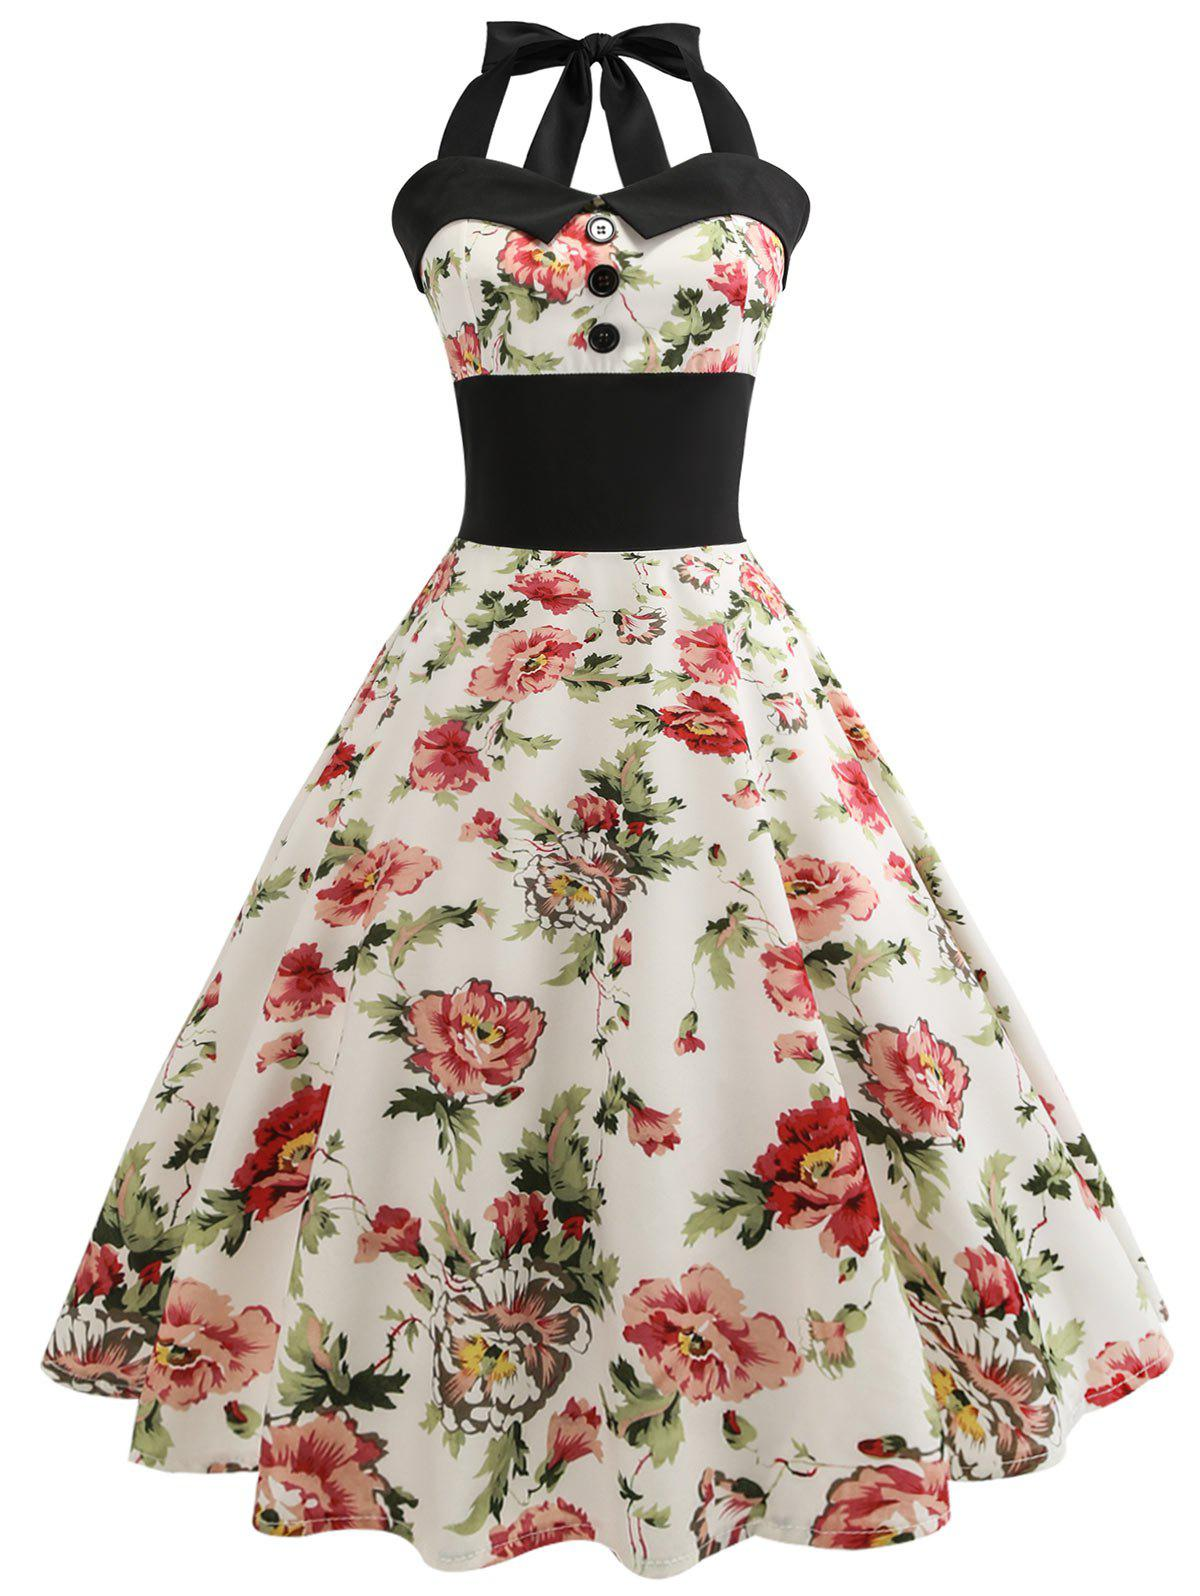 Fashion Retro Floral Print Halter Pin Up Dress